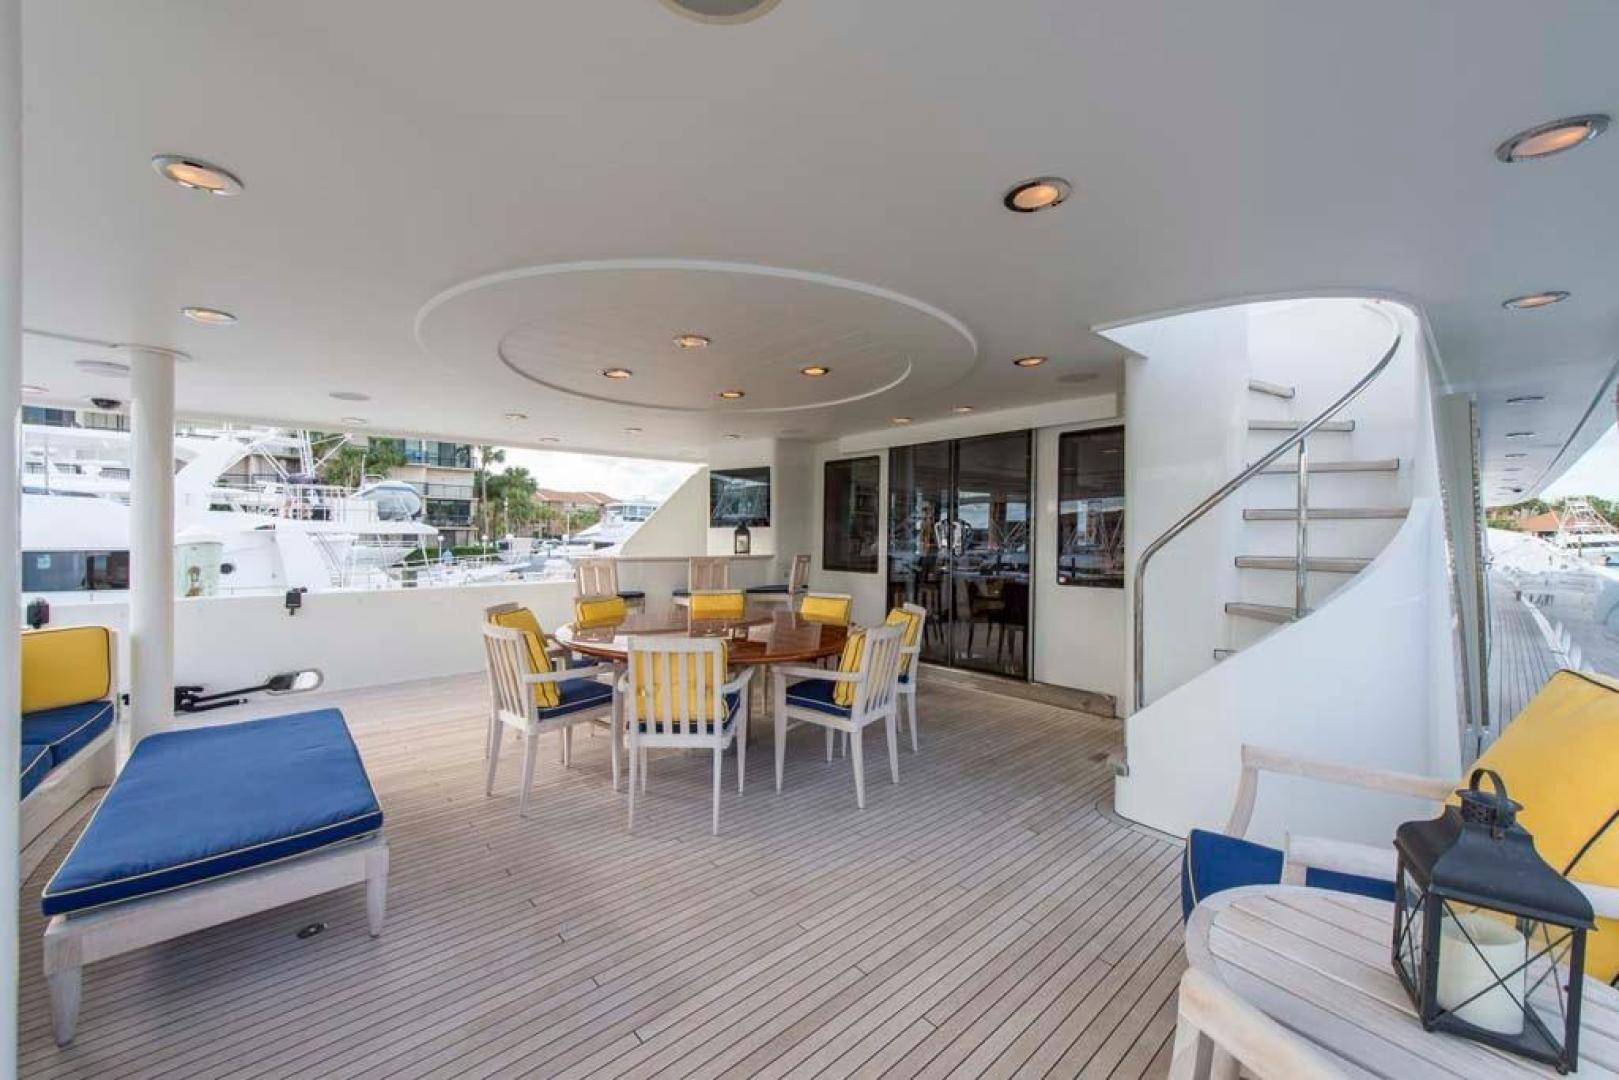 Westport-Tri-Deck-2003-Vision-Jupiter-Florida-United-States-Aft-Deck-370698